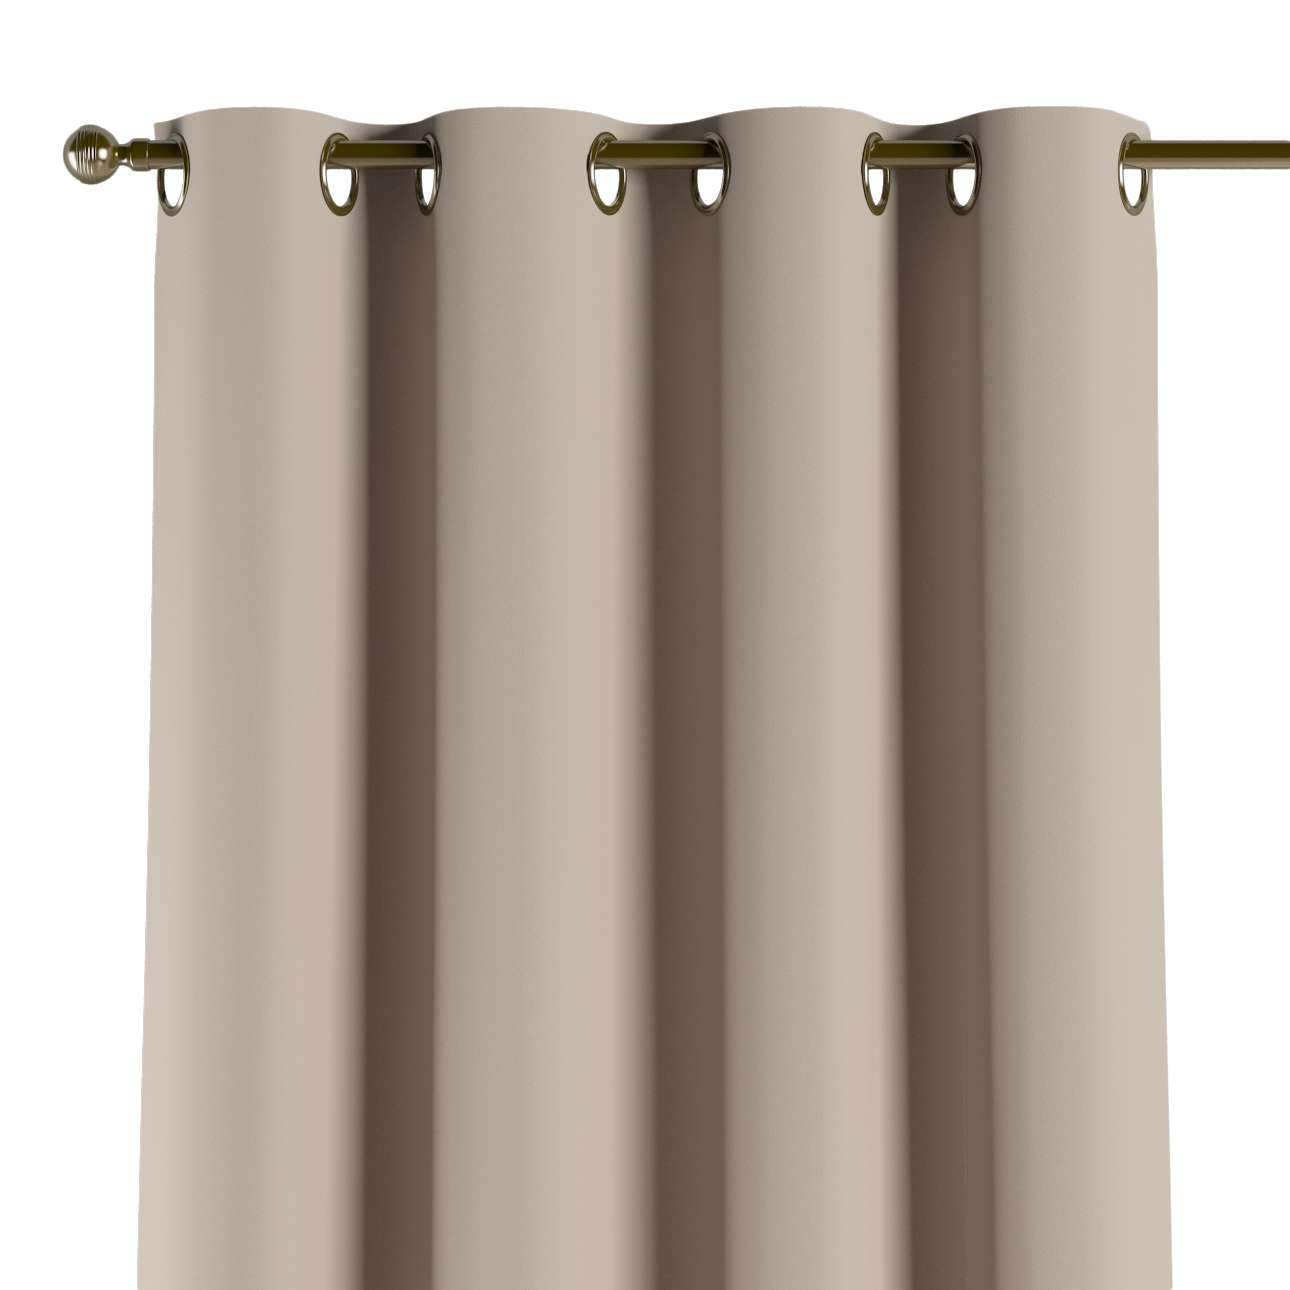 Blackout Eyelet Curtains 140 X 260 Cm Approx 55 102 Inch In